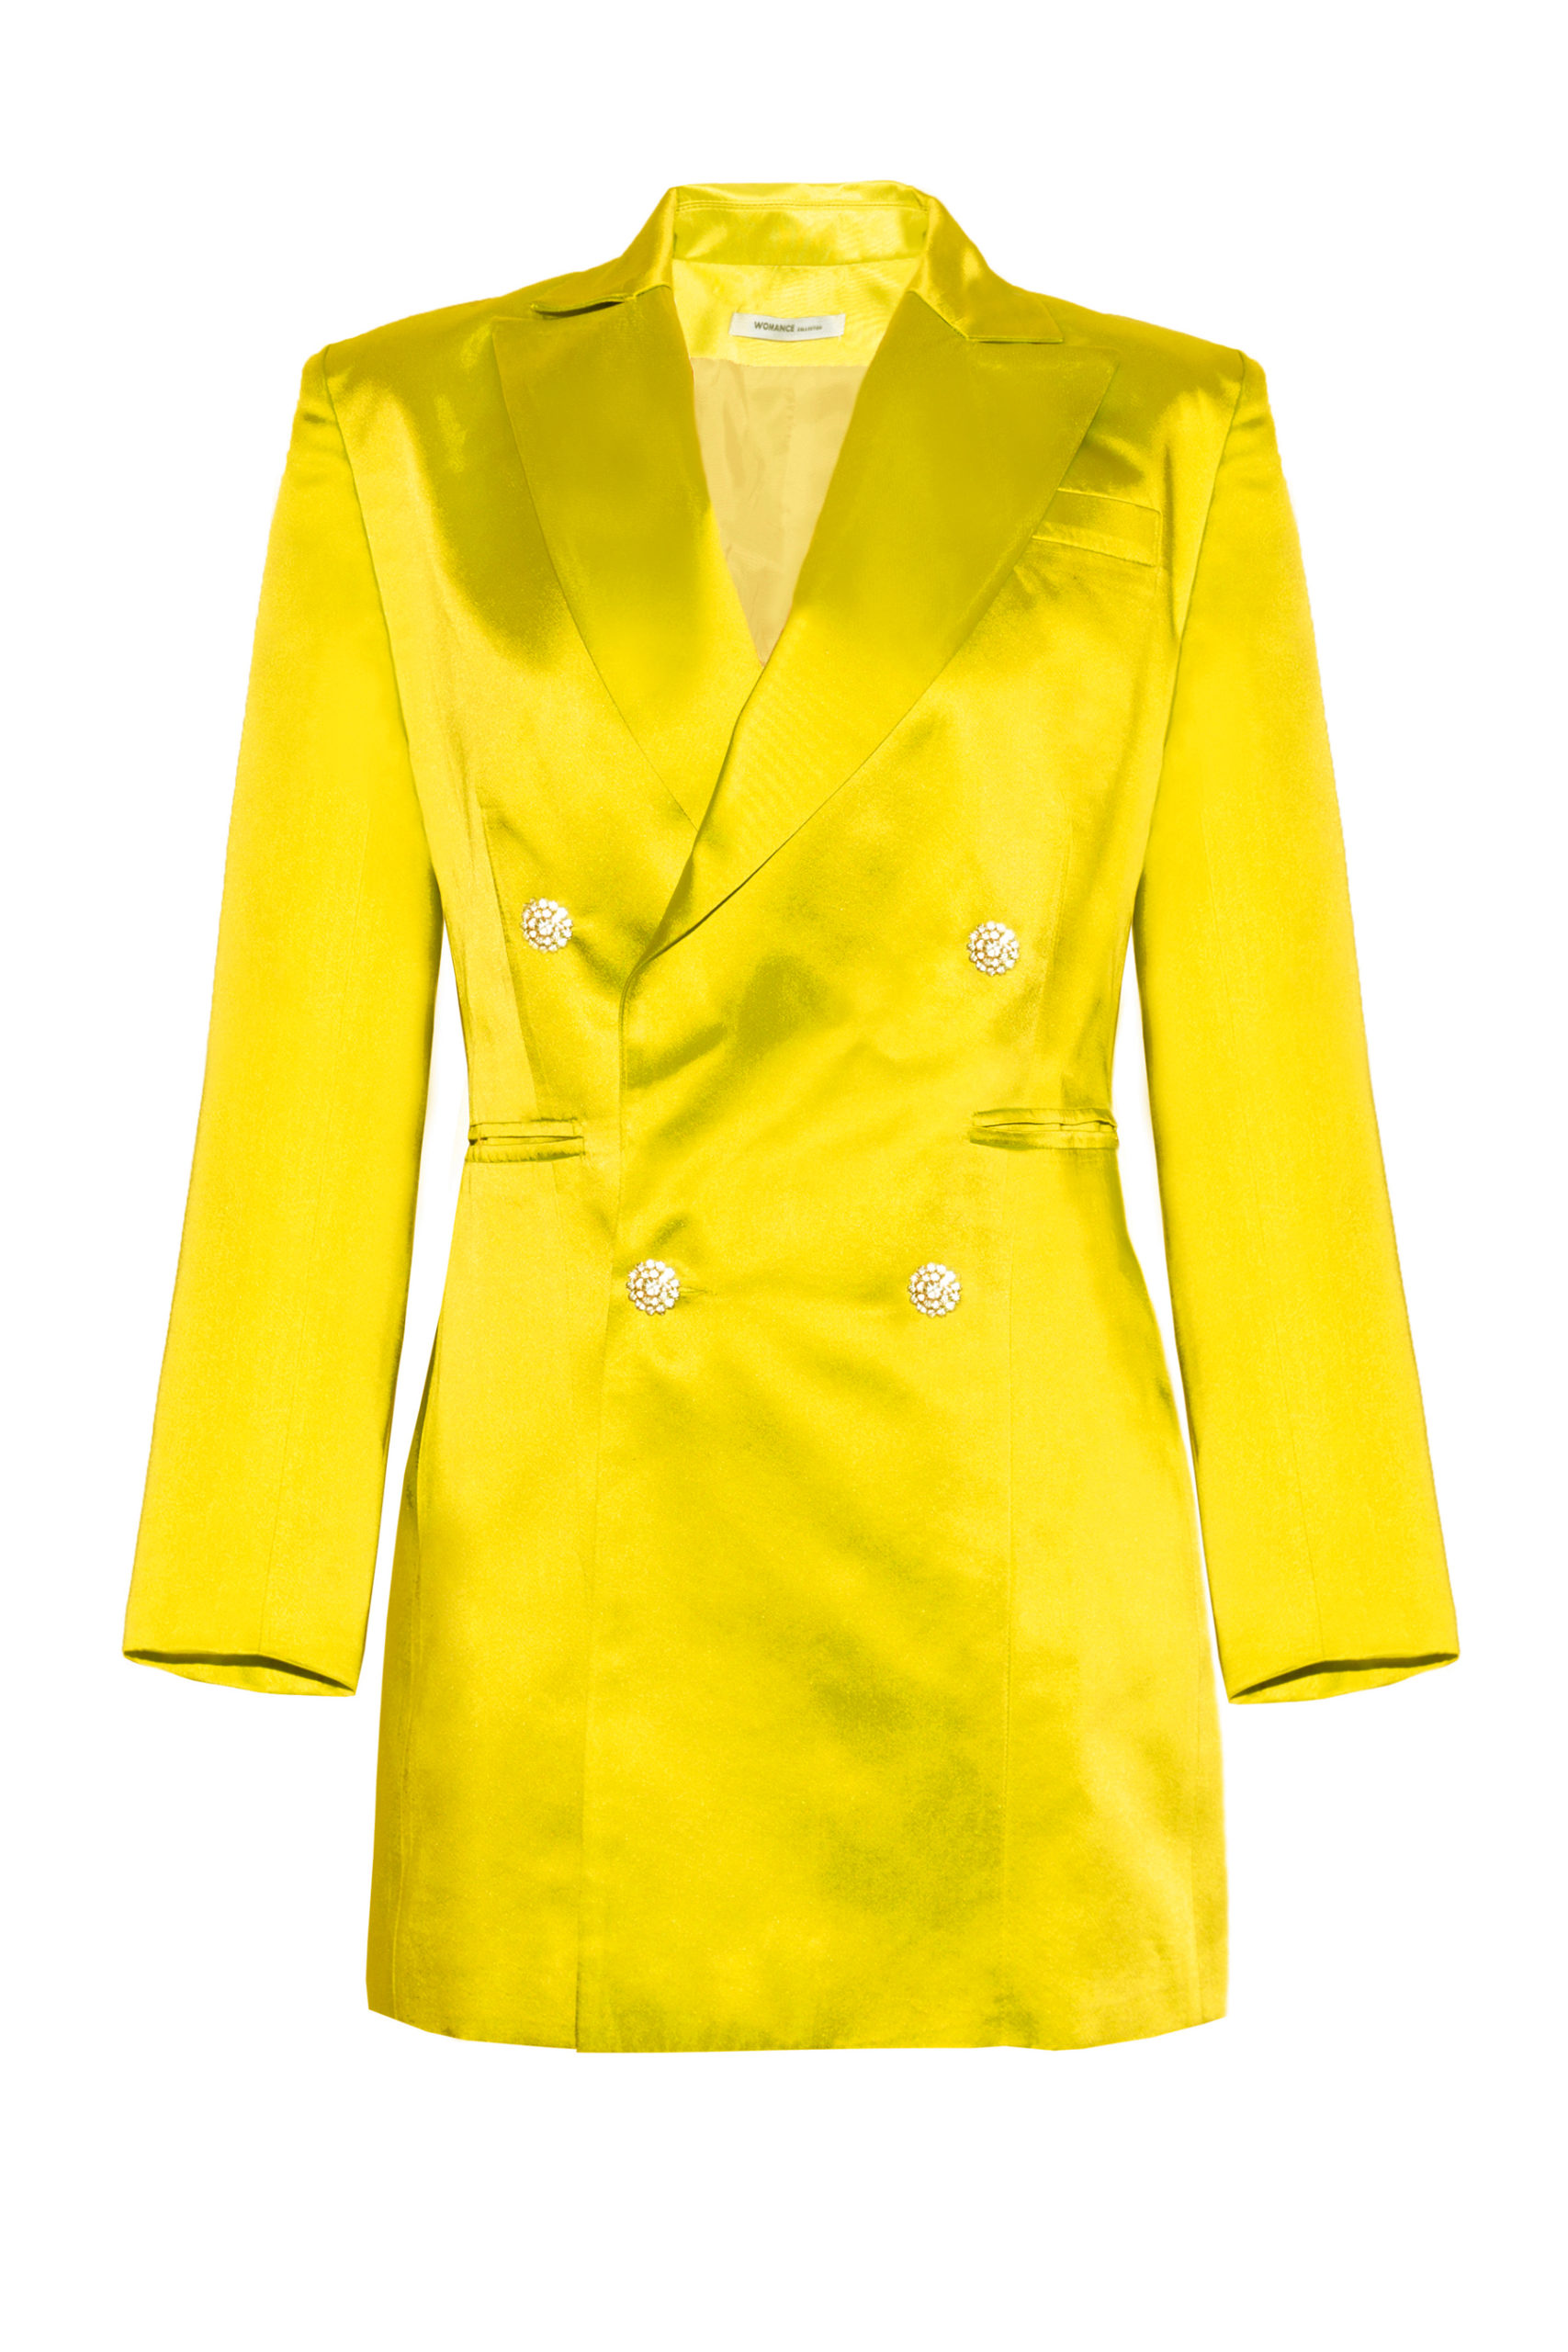 Chaqueta vestido amarilloThe Tuxedo yellow silk smoking